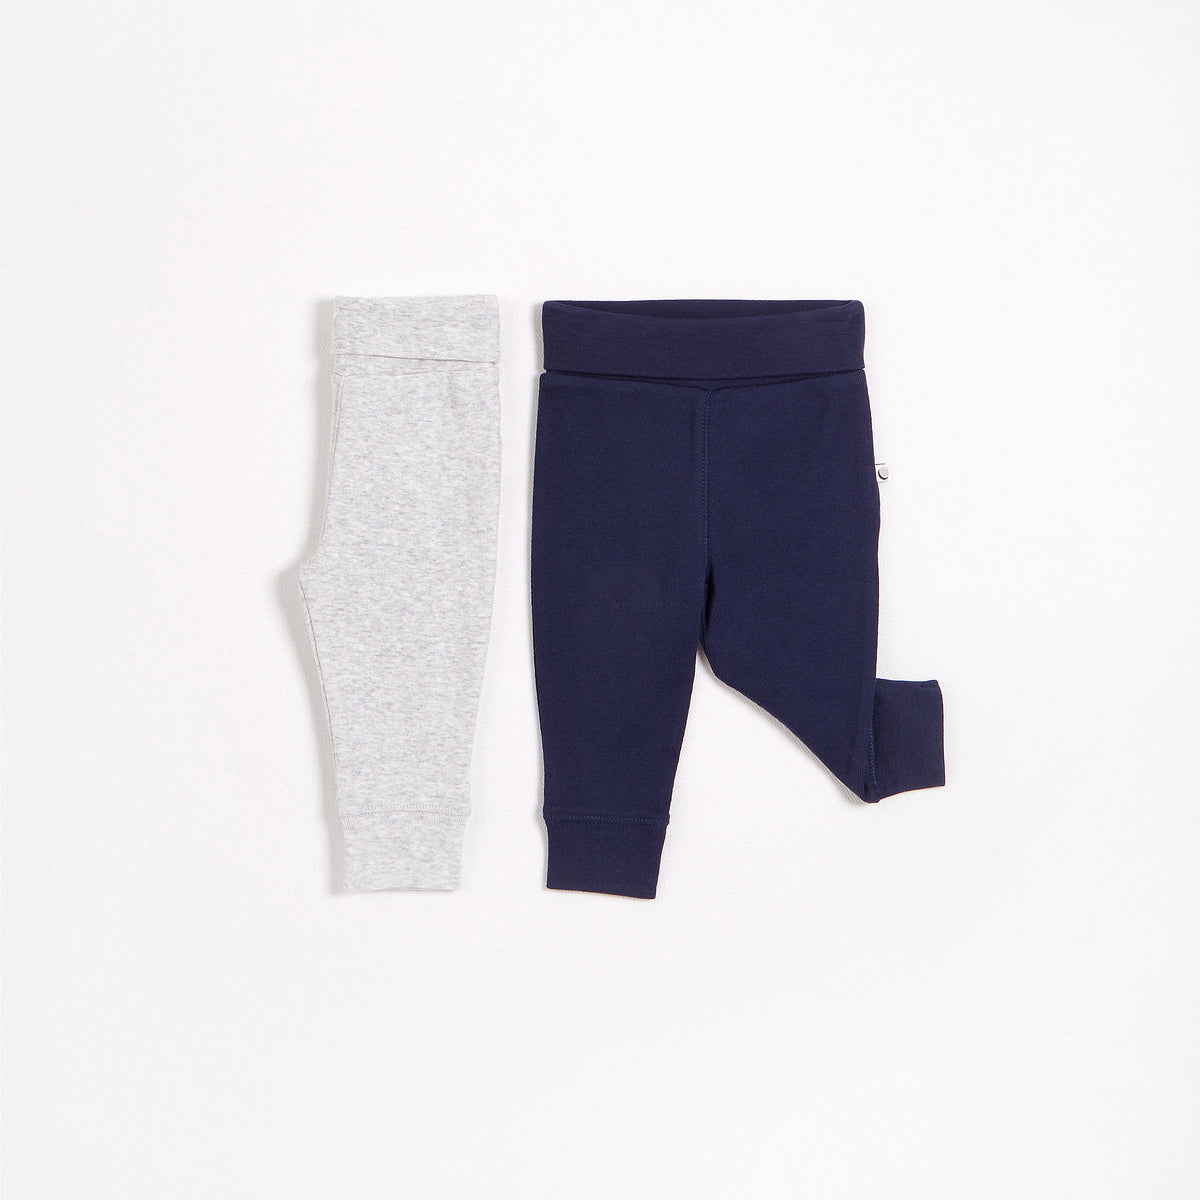 Navy & Grey Essential Leggings – 2 Pack